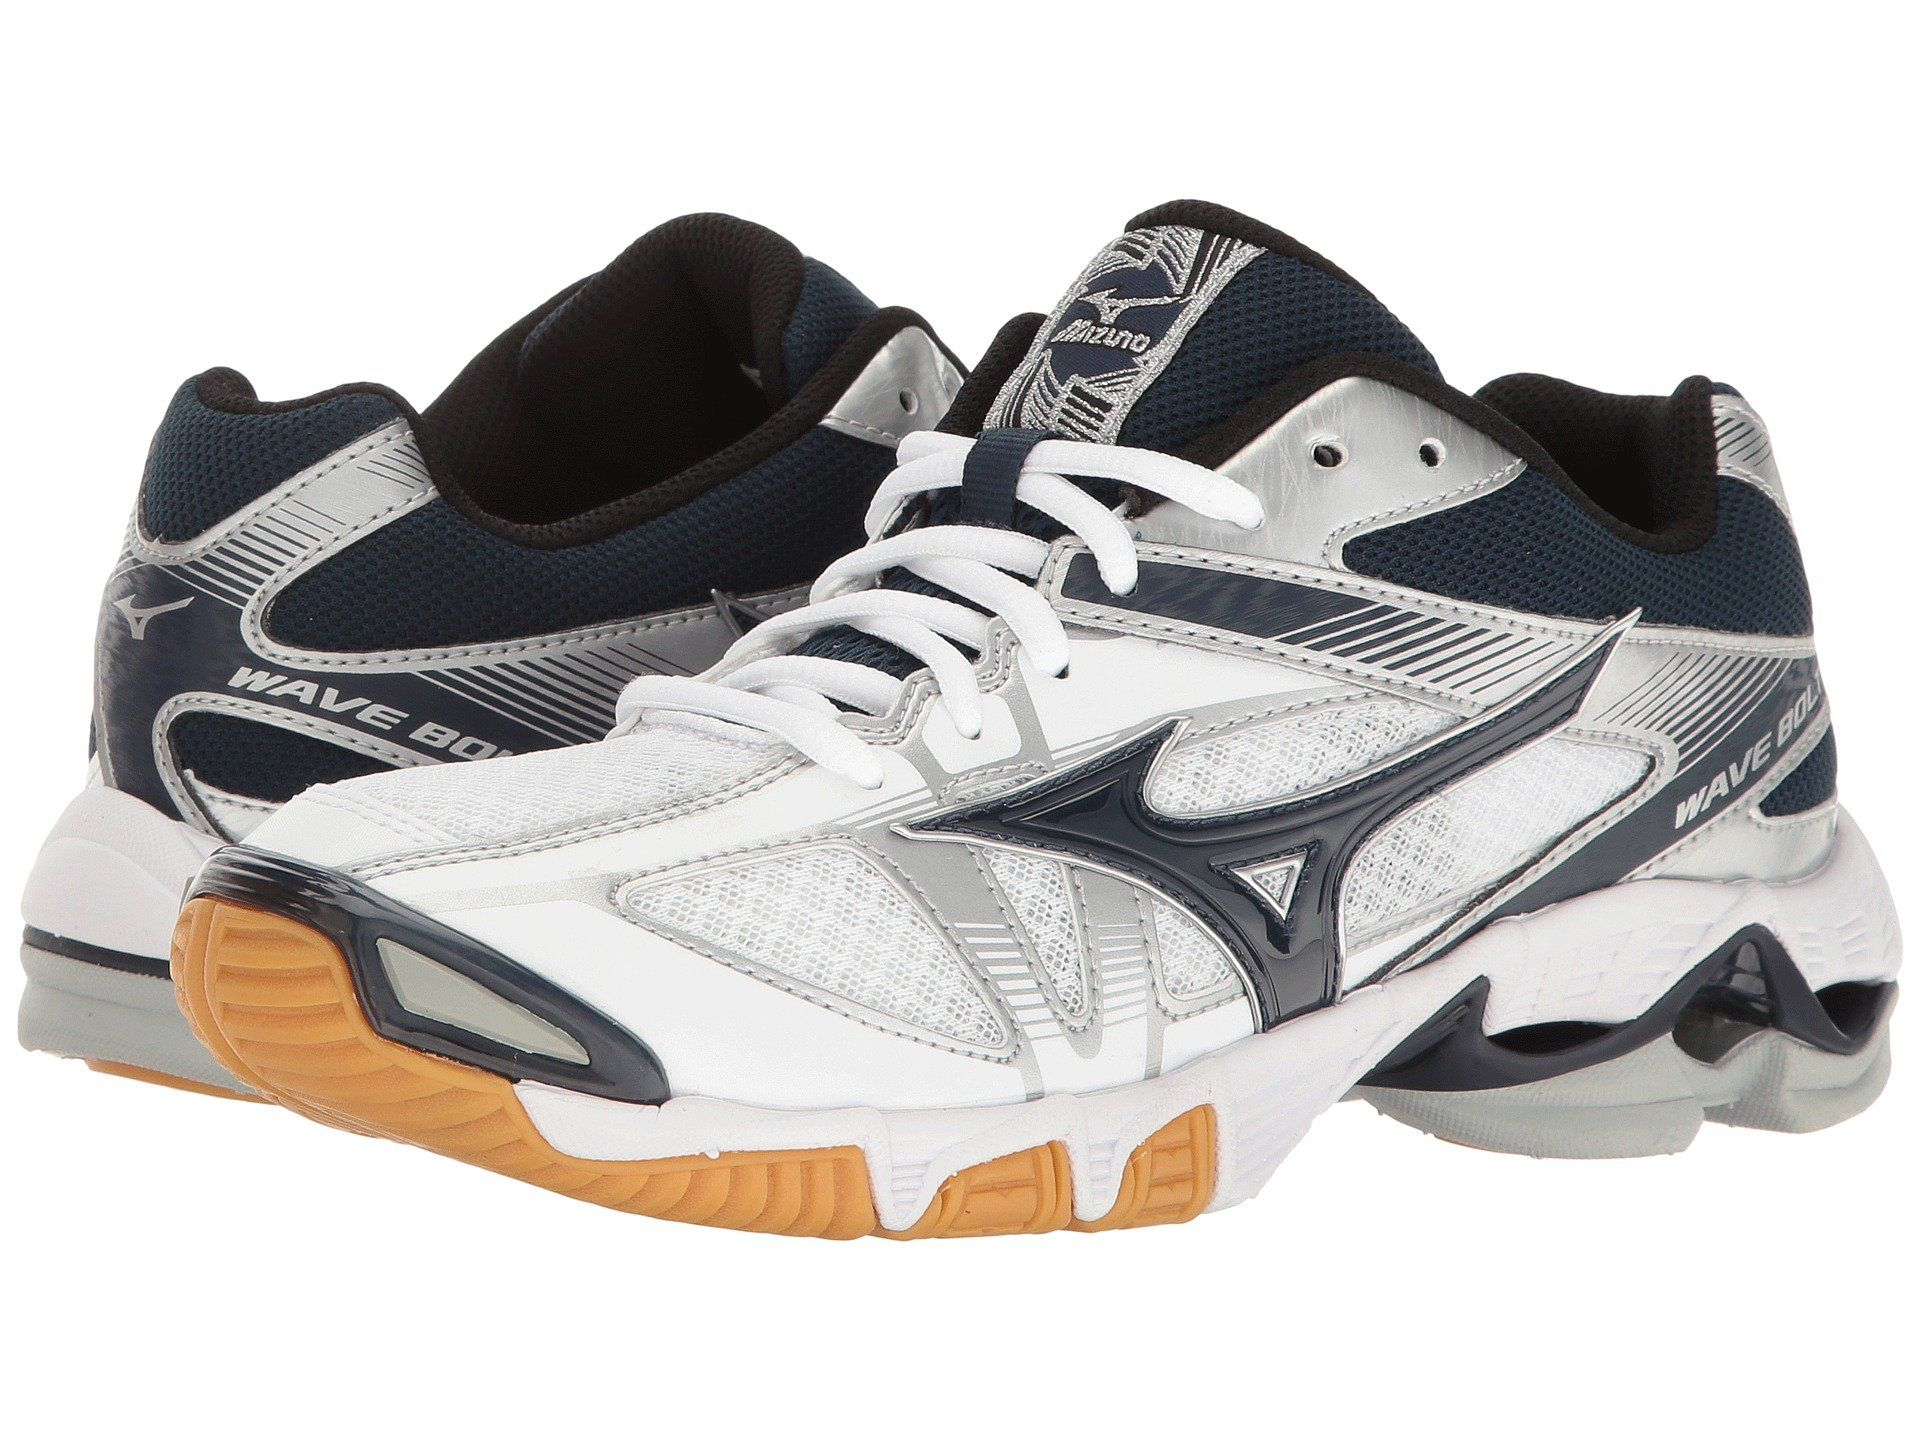 Mizuno Wave Bolt 6 In White Navy Modesens Womens Shoes Sneakers Running Shoes For Men Womens Running Shoes